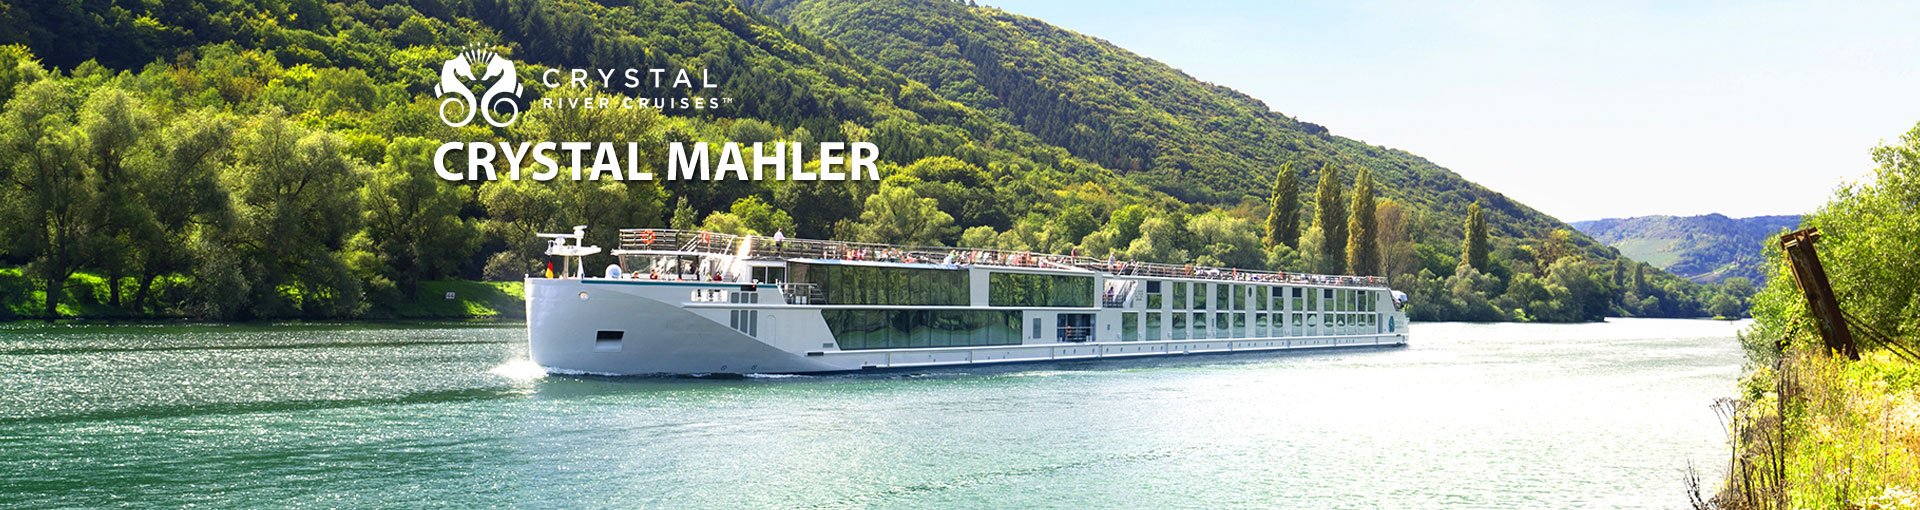 Crystal Mahler River Ship